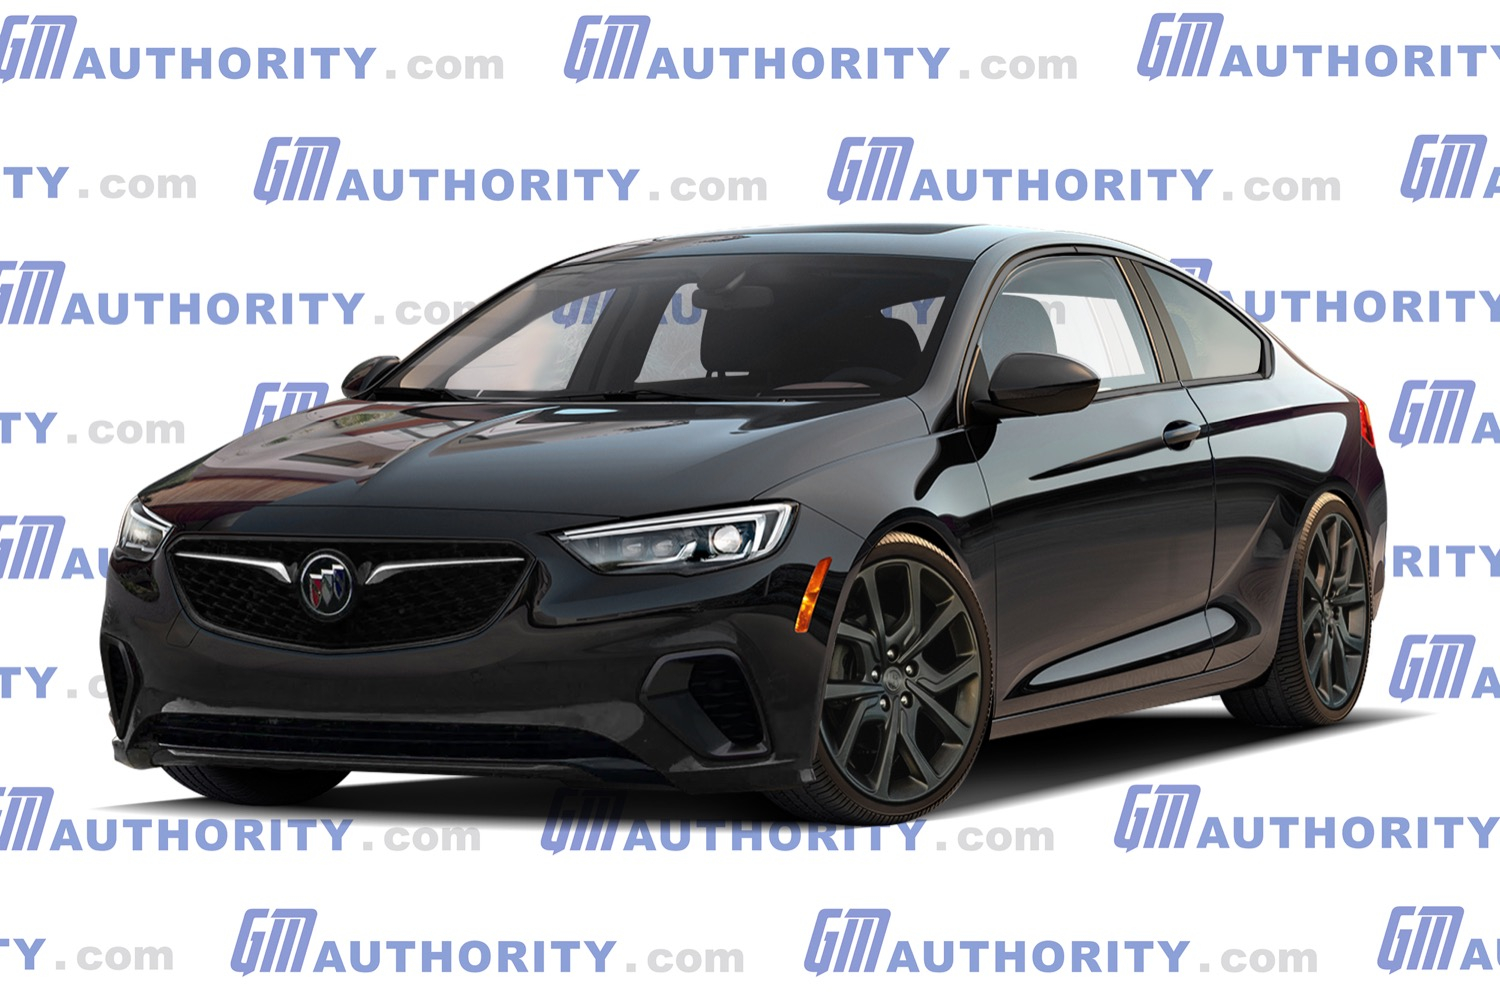 Modern Buick Regal Gnx Rendered | Gm Authority Is The New 2022 Buick Regal A Good Car